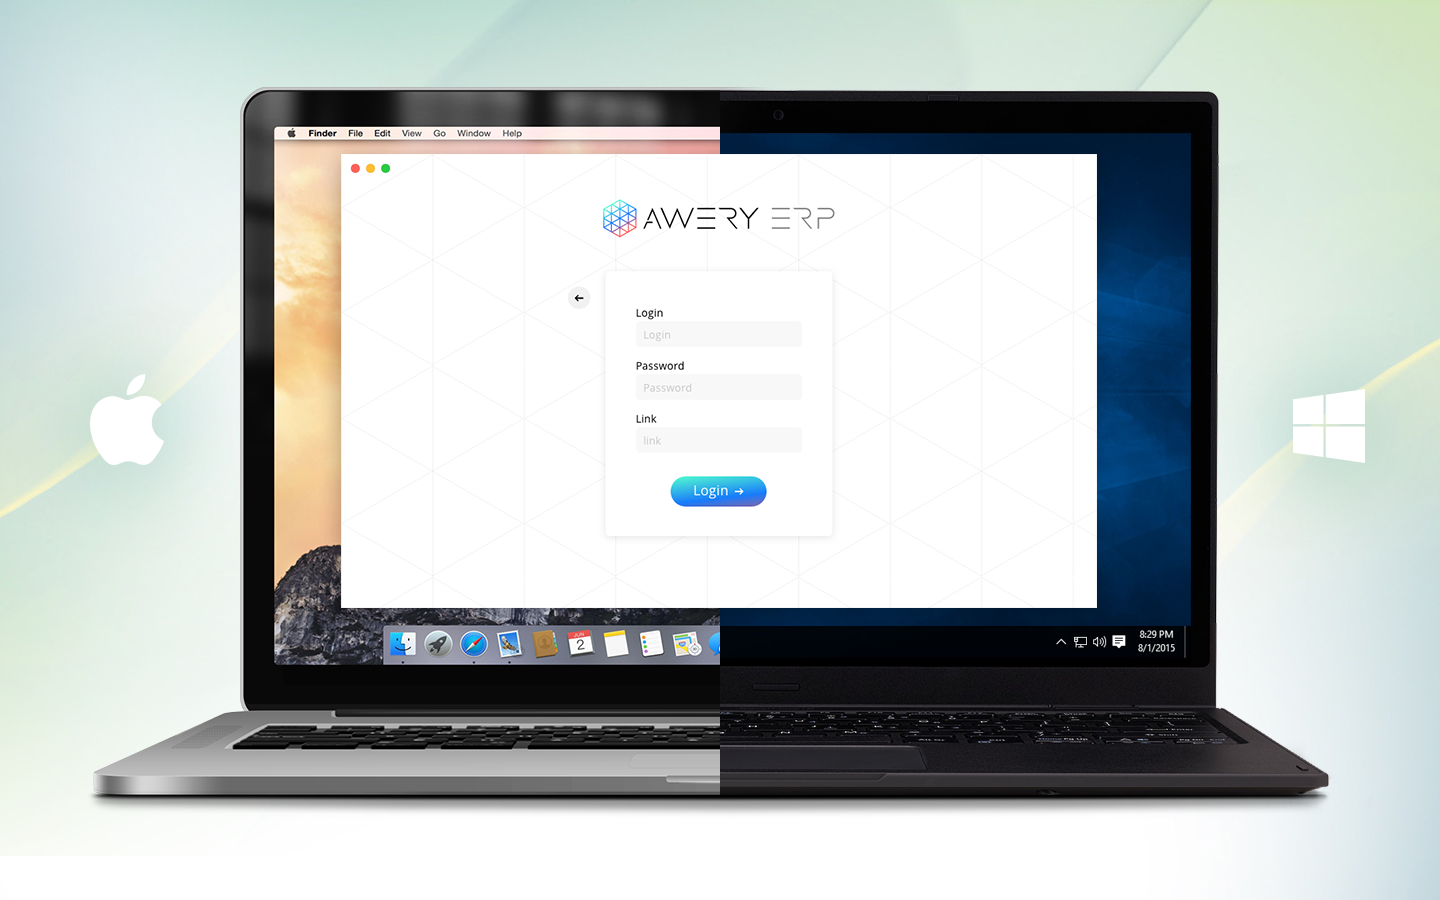 Release of updated Desktop Apps - Awery ERP will load and work faster in native apps